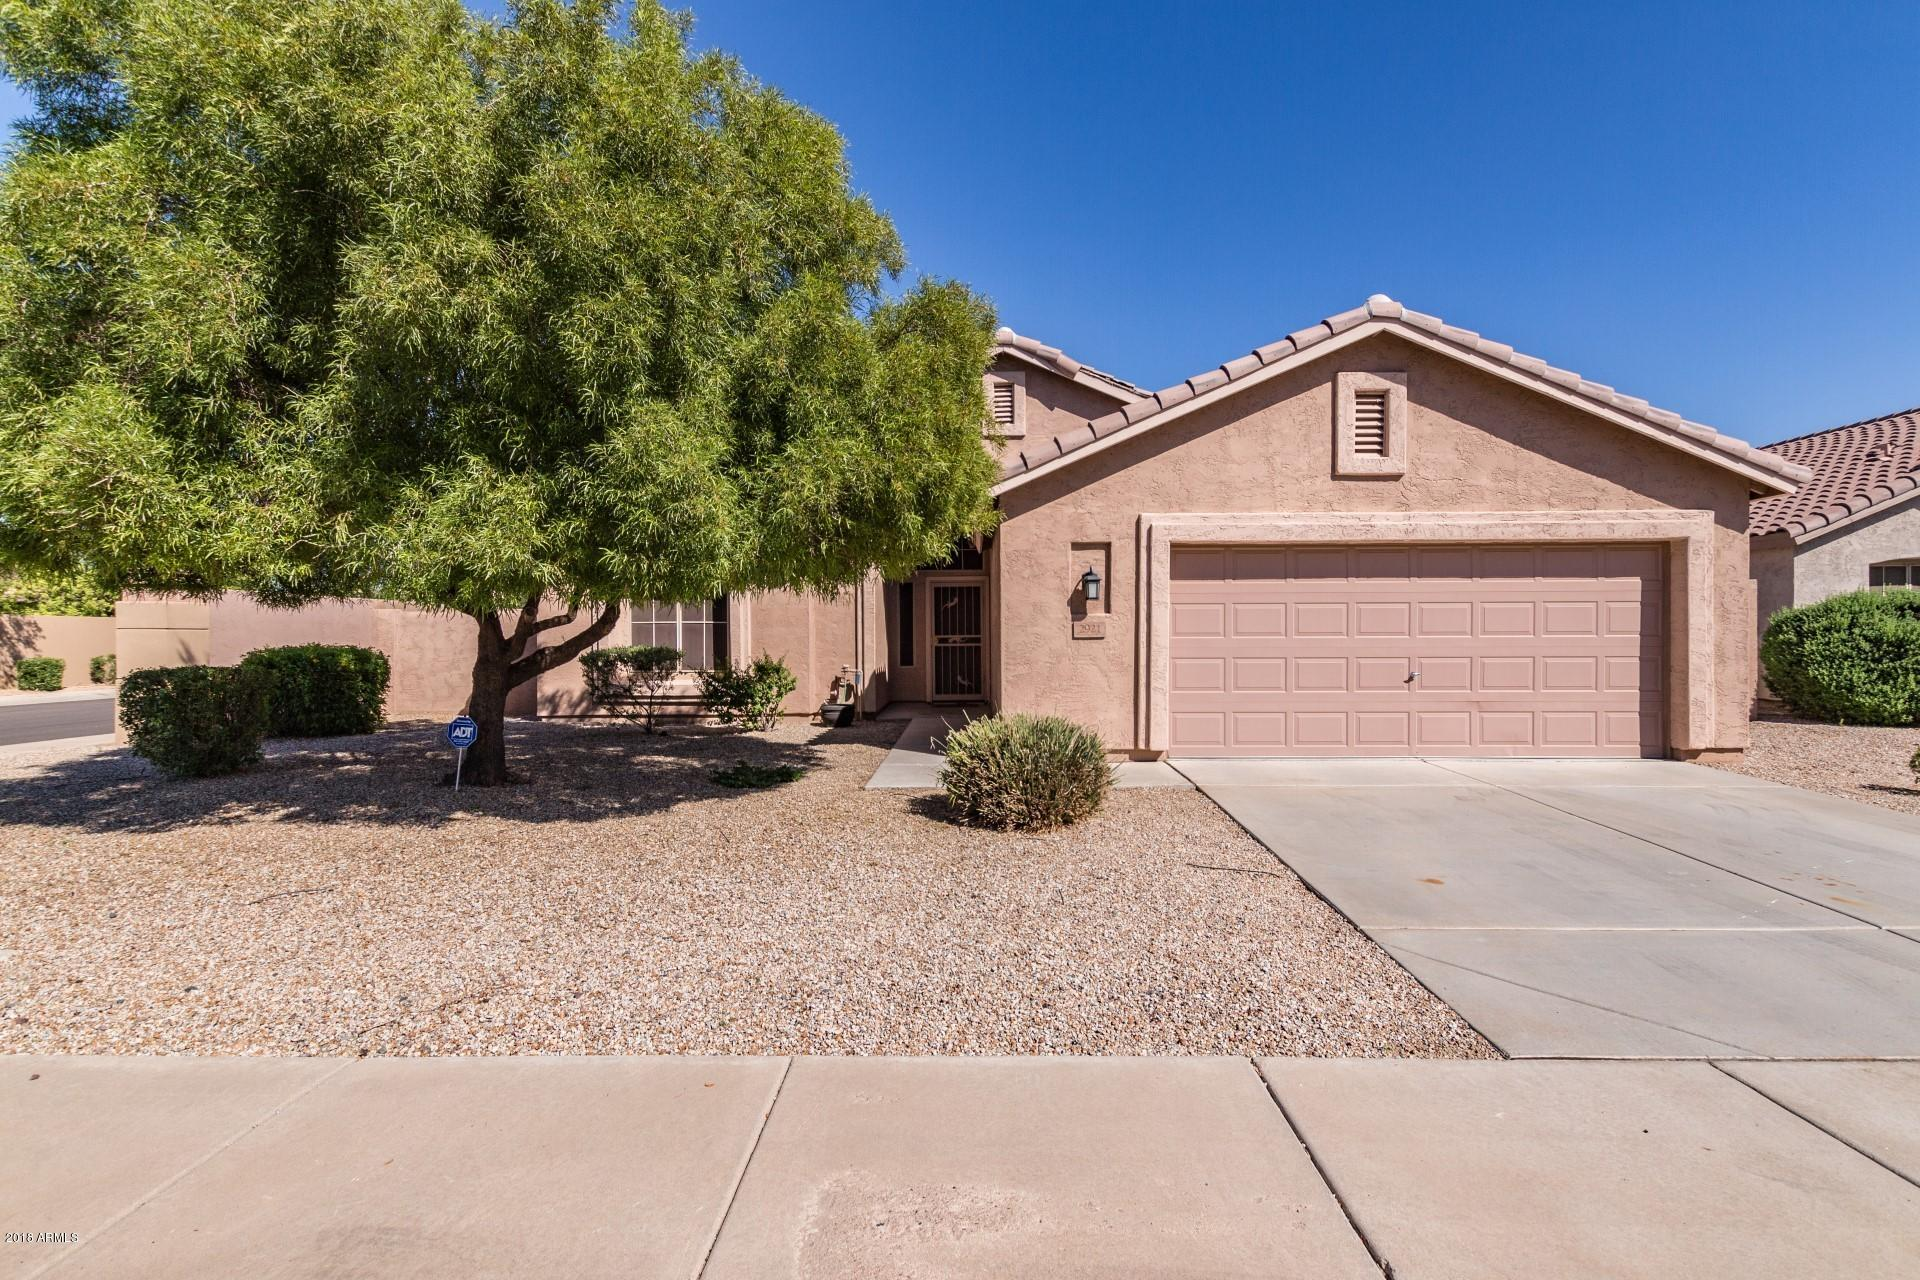 MLS 5826786 2921 S Tumbleweed Lane, Chandler, AZ 85286 Chandler AZ Carino Estates